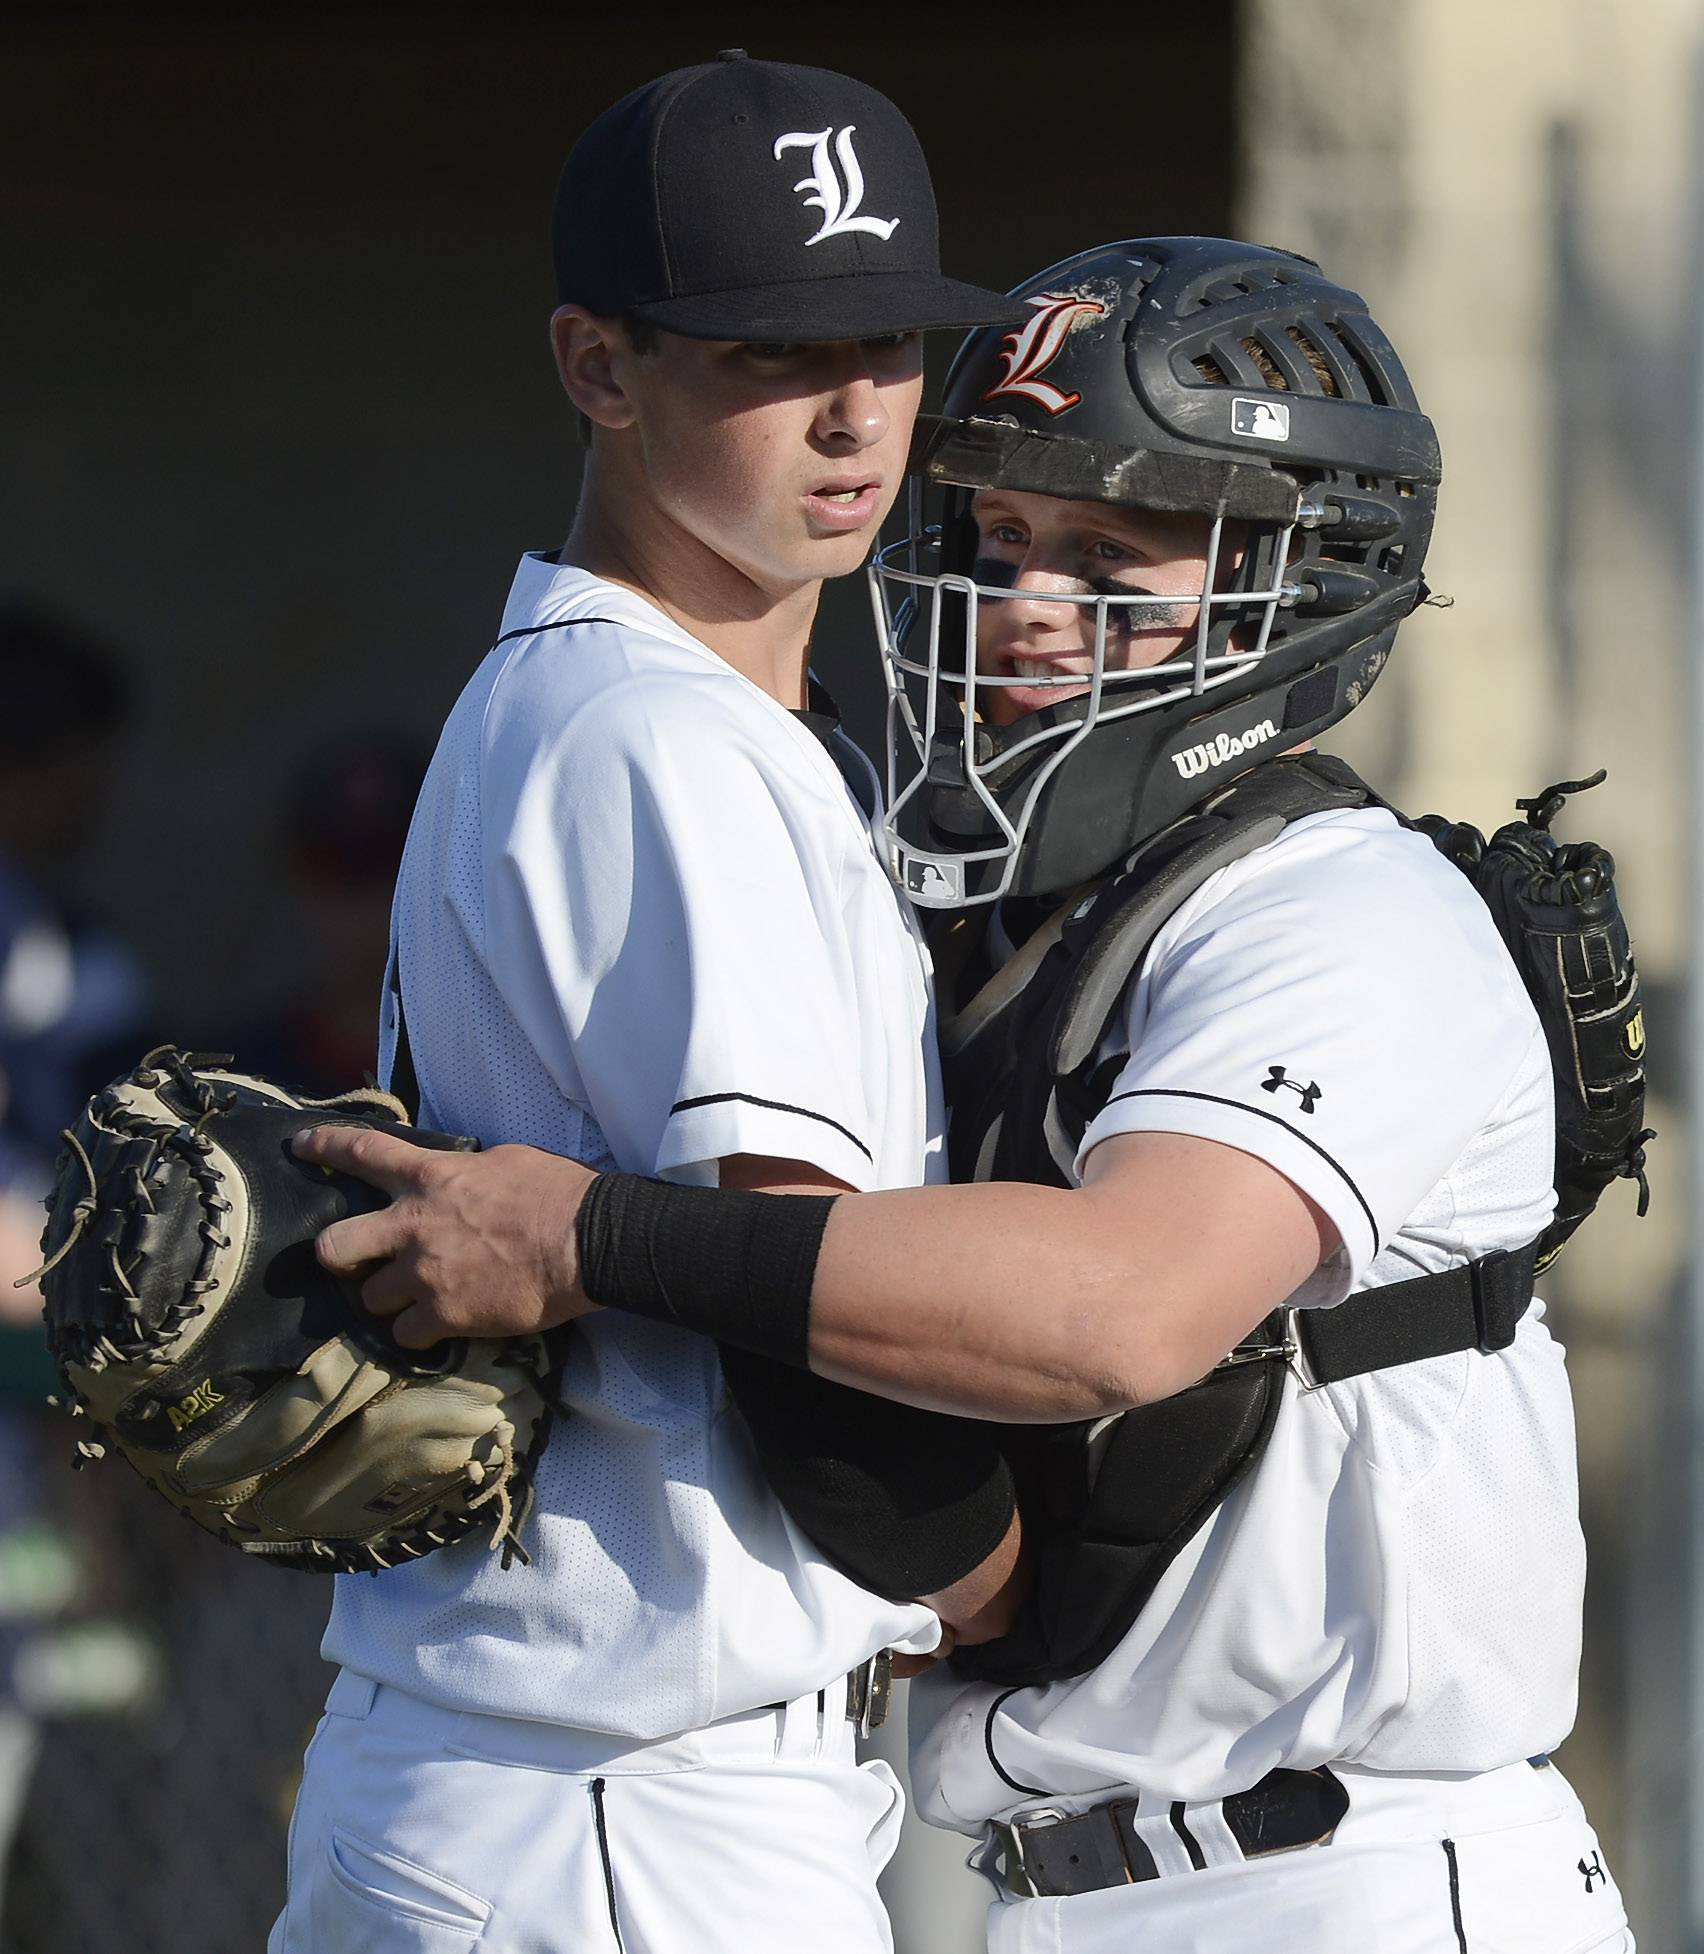 Libertyville pitcher Jeff Barton gets a hug from catcher Matt Reed after the Wildcats defeated St. Viator 7-2 in the Class 4A baseball sectional semifinal at Glenbrook South on Wednesday.